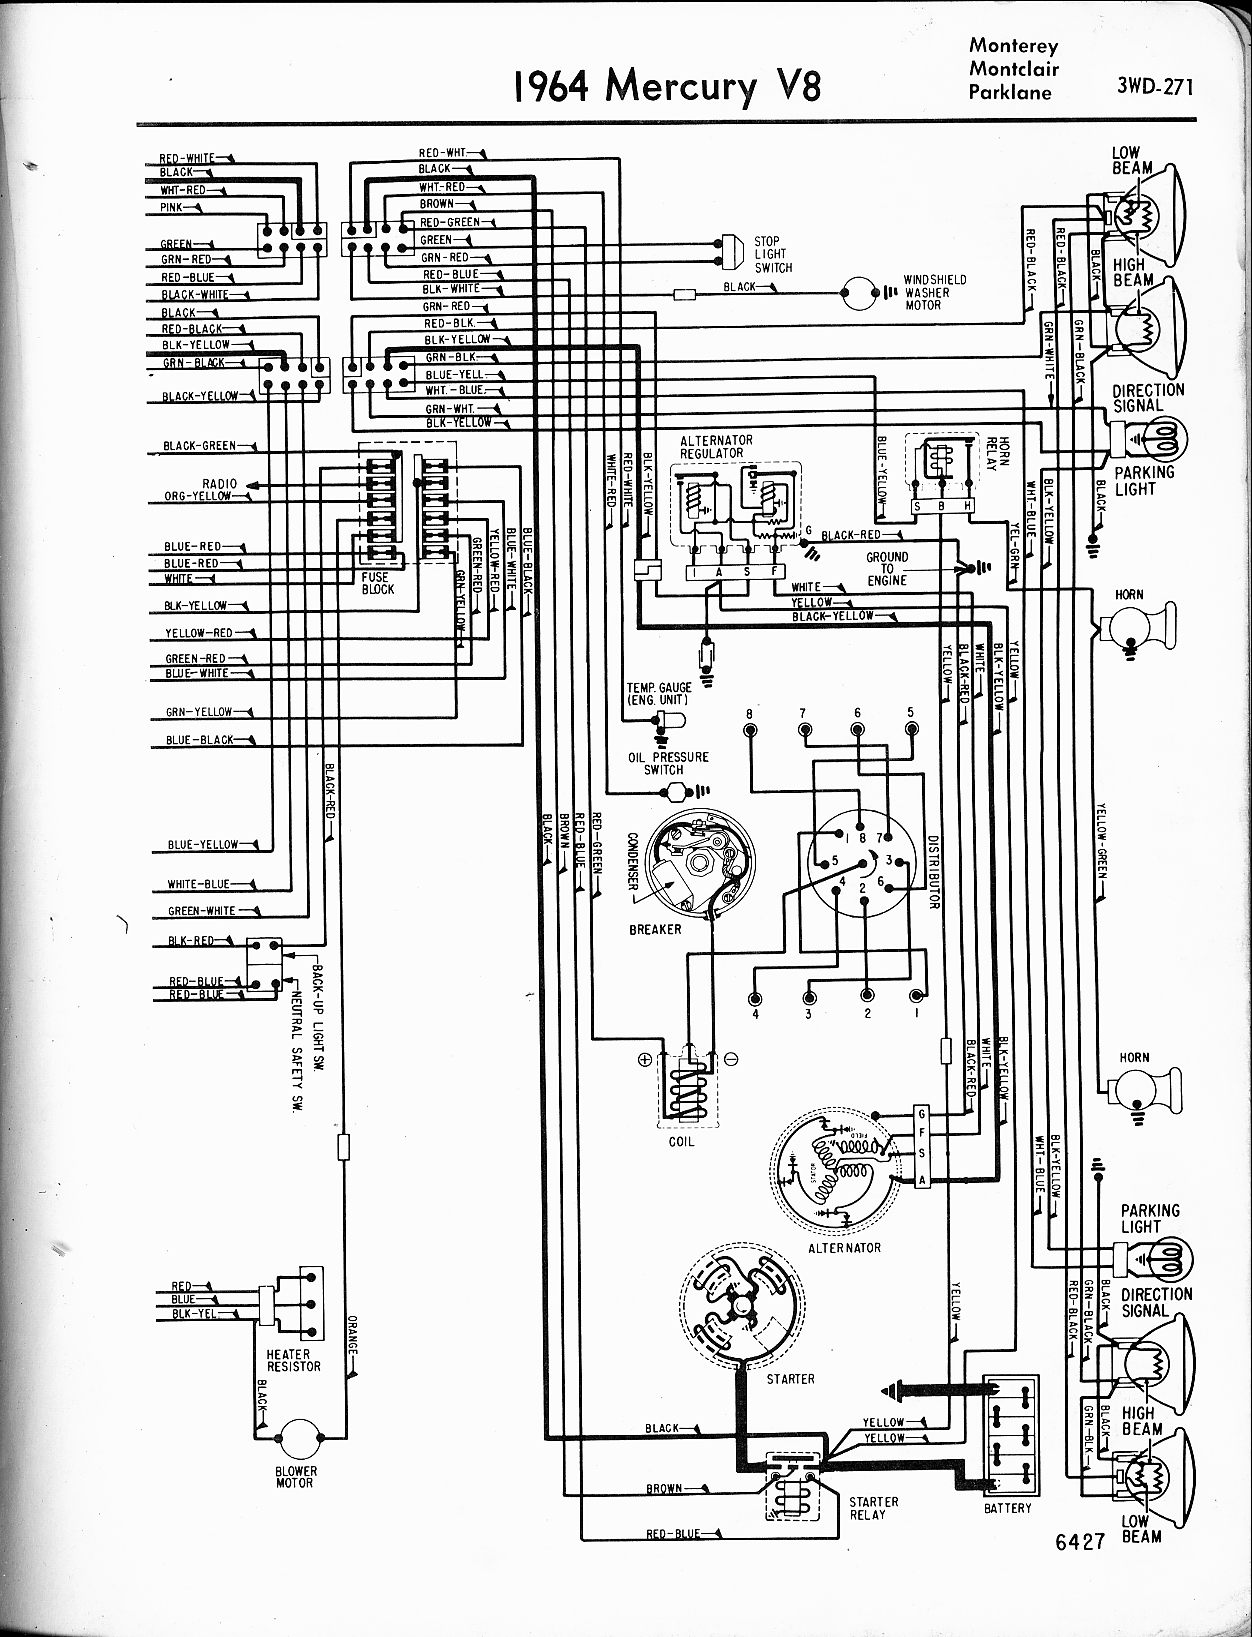 MWire5765 271 64 falcon wiring diagram 64 comet ignition wiring \u2022 wiring 64 valiant wiring diagram at bayanpartner.co